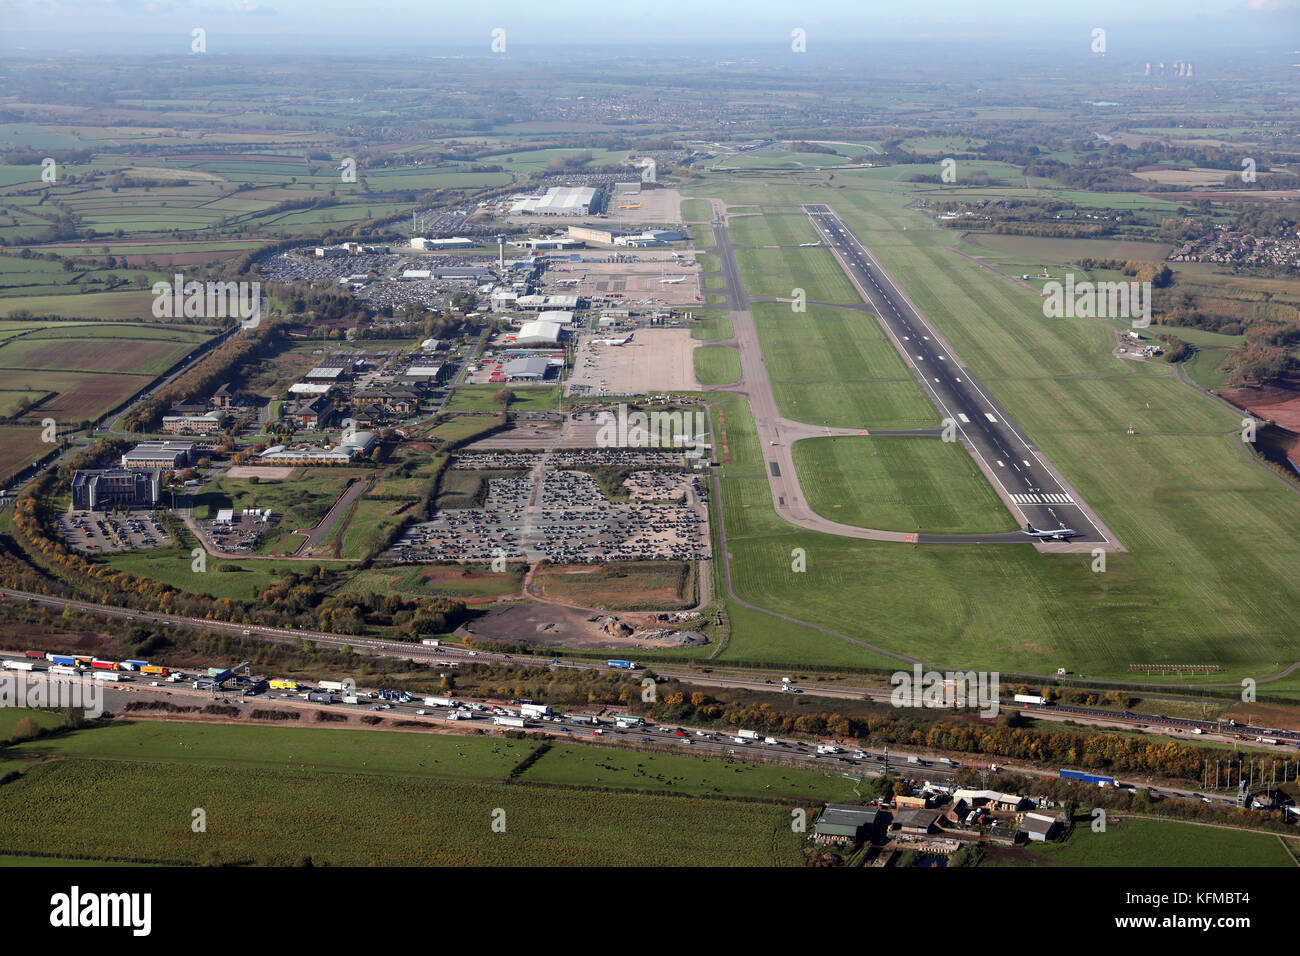 aerial view of East Midlands Airport, Derby, UK - Stock Image